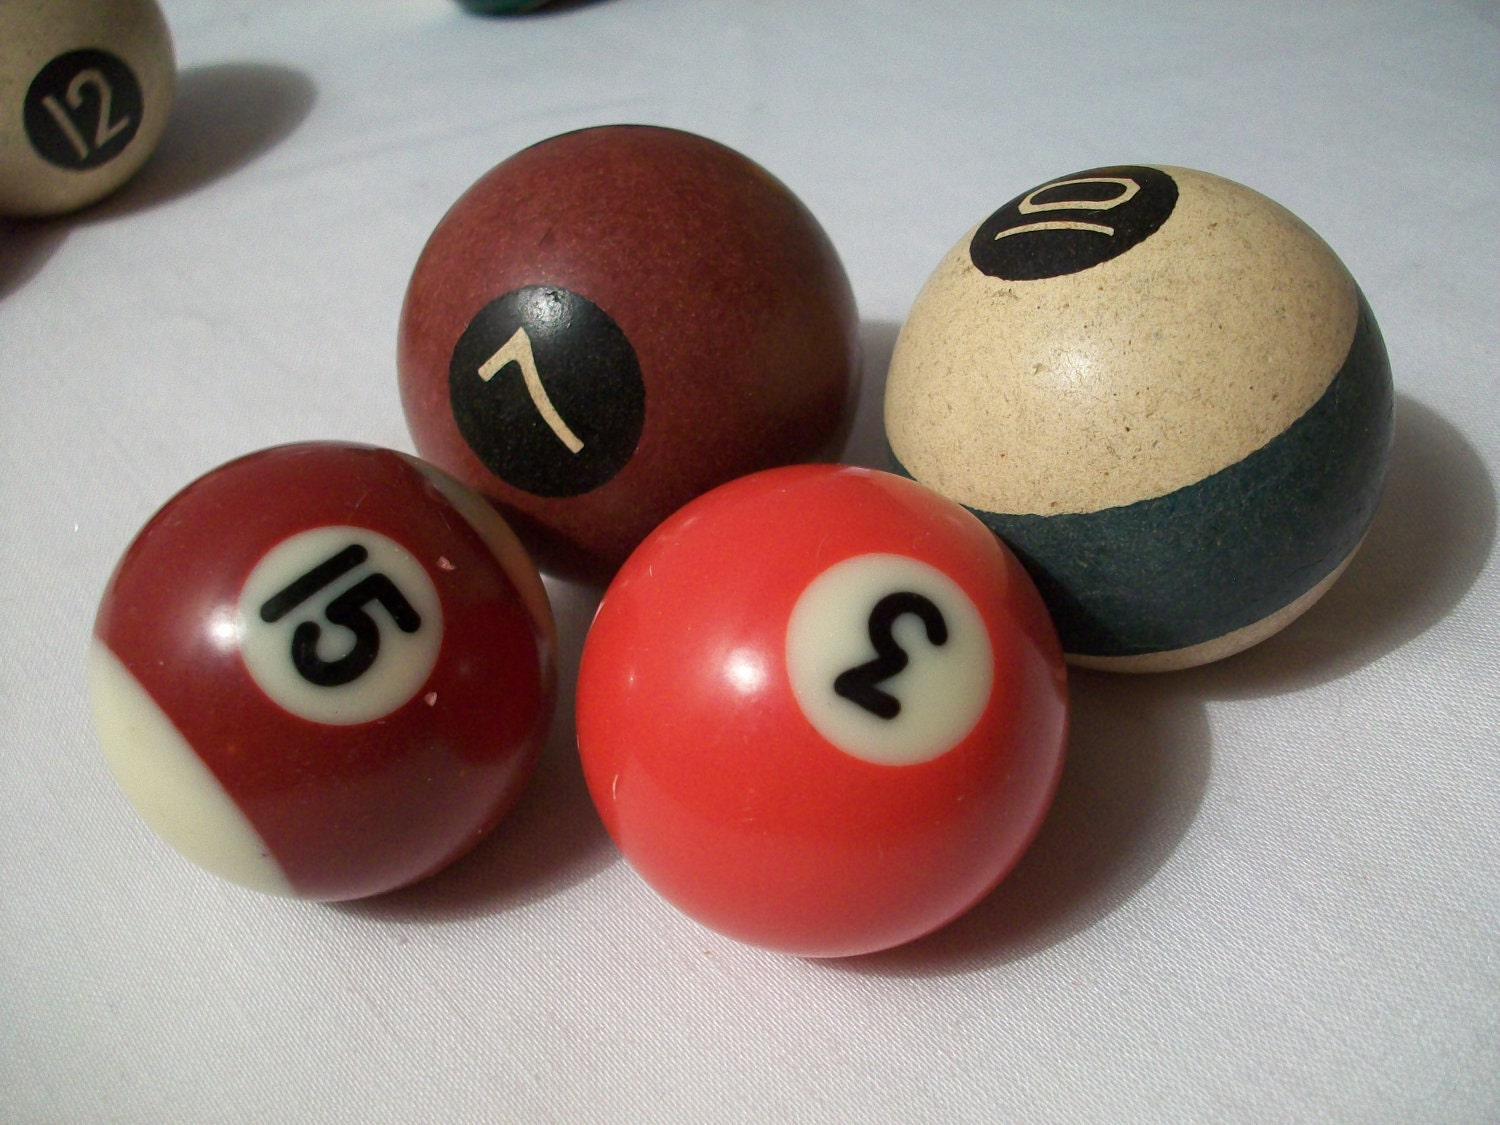 Vintage Billiard Balls Great Mancave Decor Instant By. Best Living Room Design 2016. Living Room Dog Bed. The W Hotel Living Room. Pictures Of Living Room With Black Furniture. Candice Olson Living Room Images. Traduccion De Living Room En Español. Natural Living Room Design Ideas. Living Room Salon De Coiffure Bastille